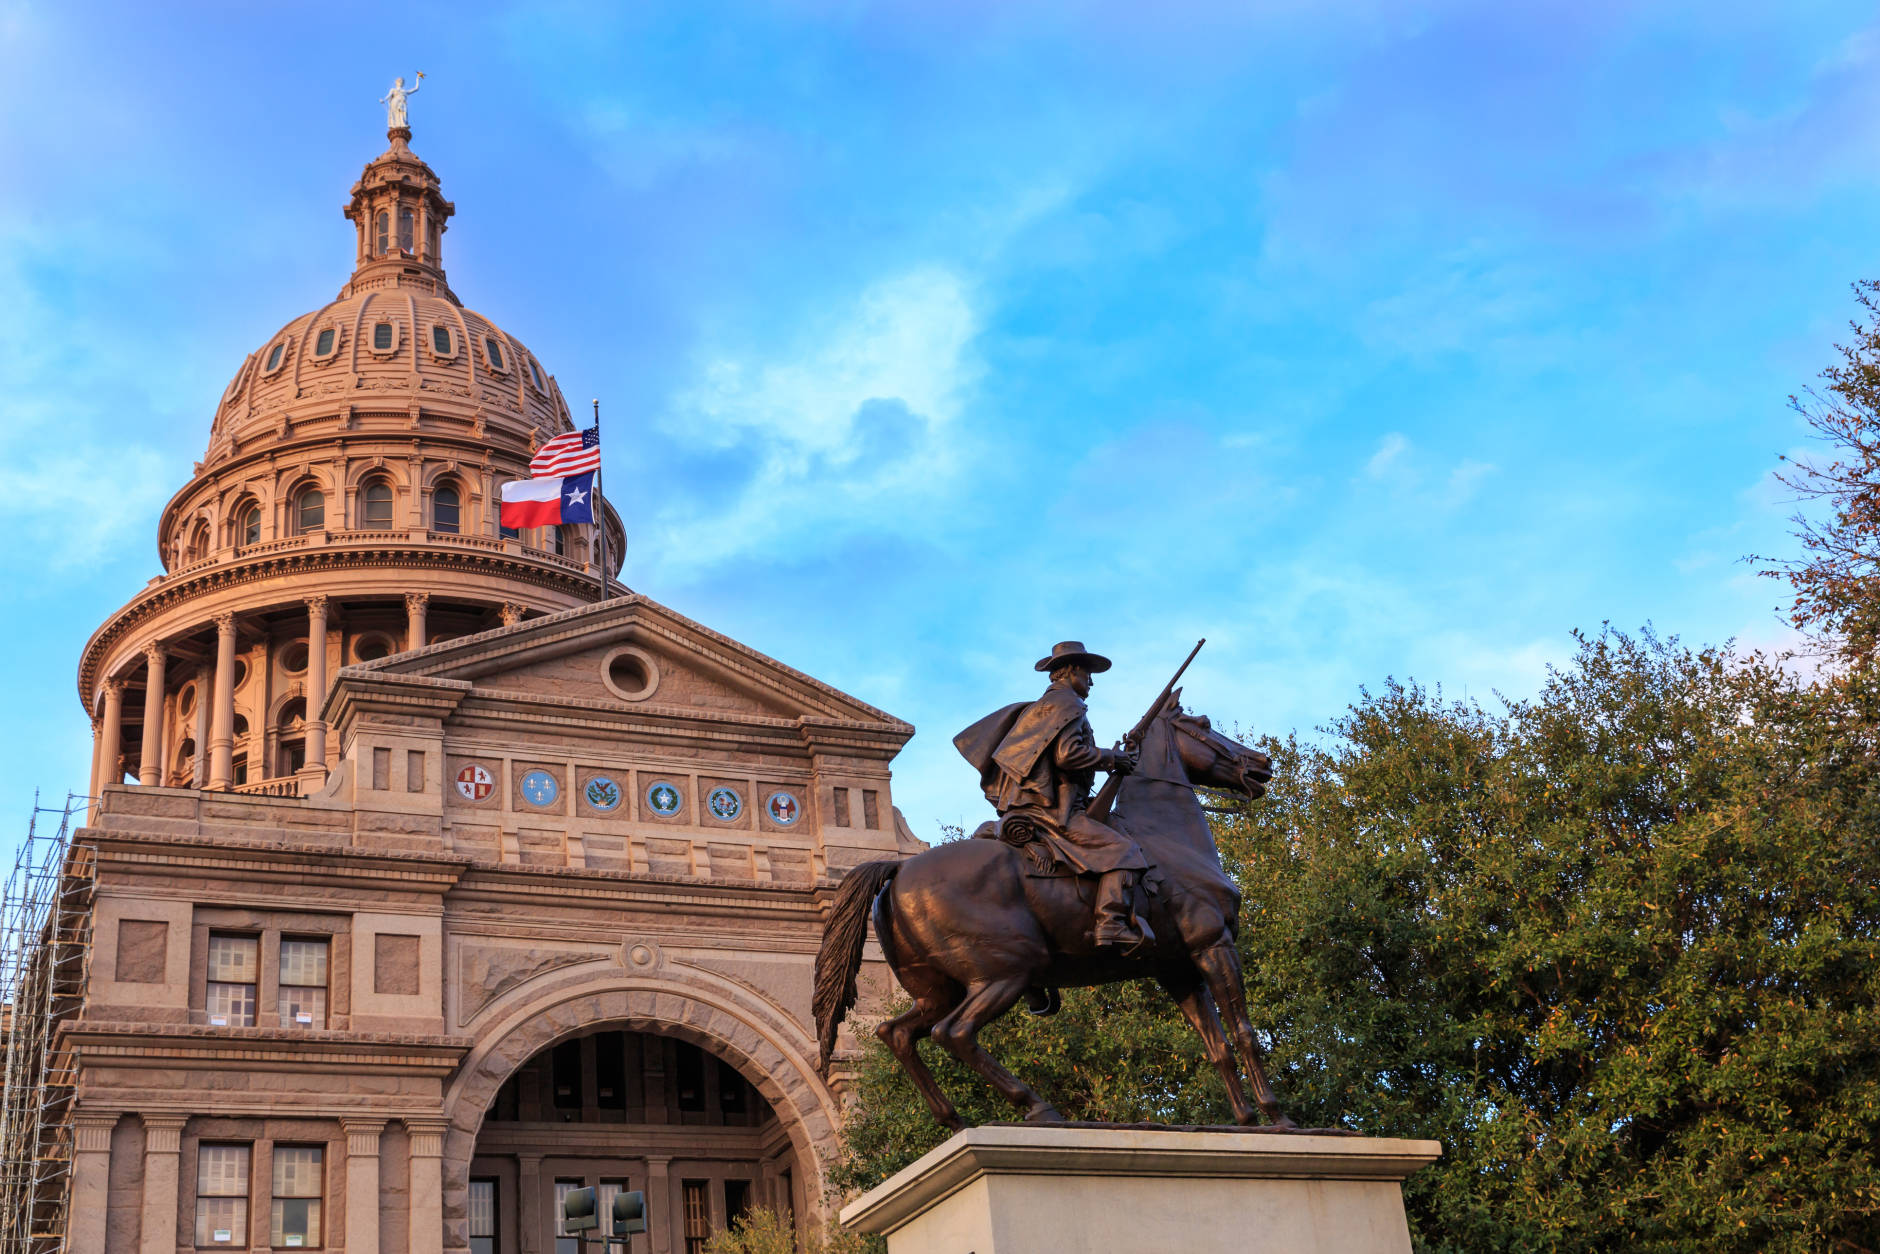 "<strong>The Best Big U.S. Cities of 2016 according to Condé Nast Traveler readers</strong>  15. Austin, Texas  Texas has two cities in Condé Nast Traveler's ""The Best Big U.S. Cities."" Austin has a reputation of being one of the country's hippest cities. (Getty Images/iStockphoto/TriciaDaniel)"